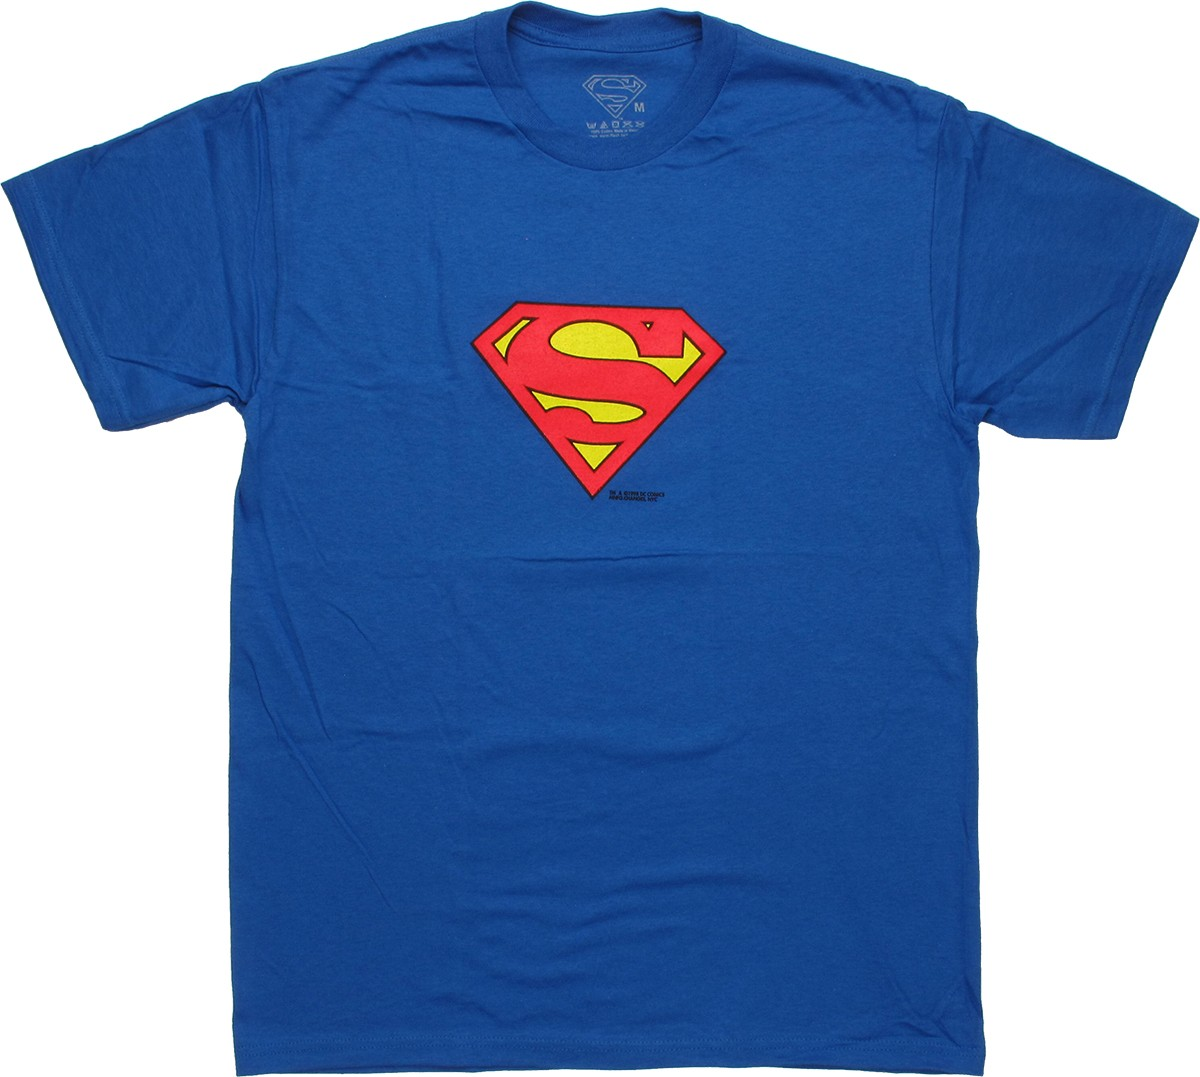 Superman small logo t shirt for Shirts with small logos